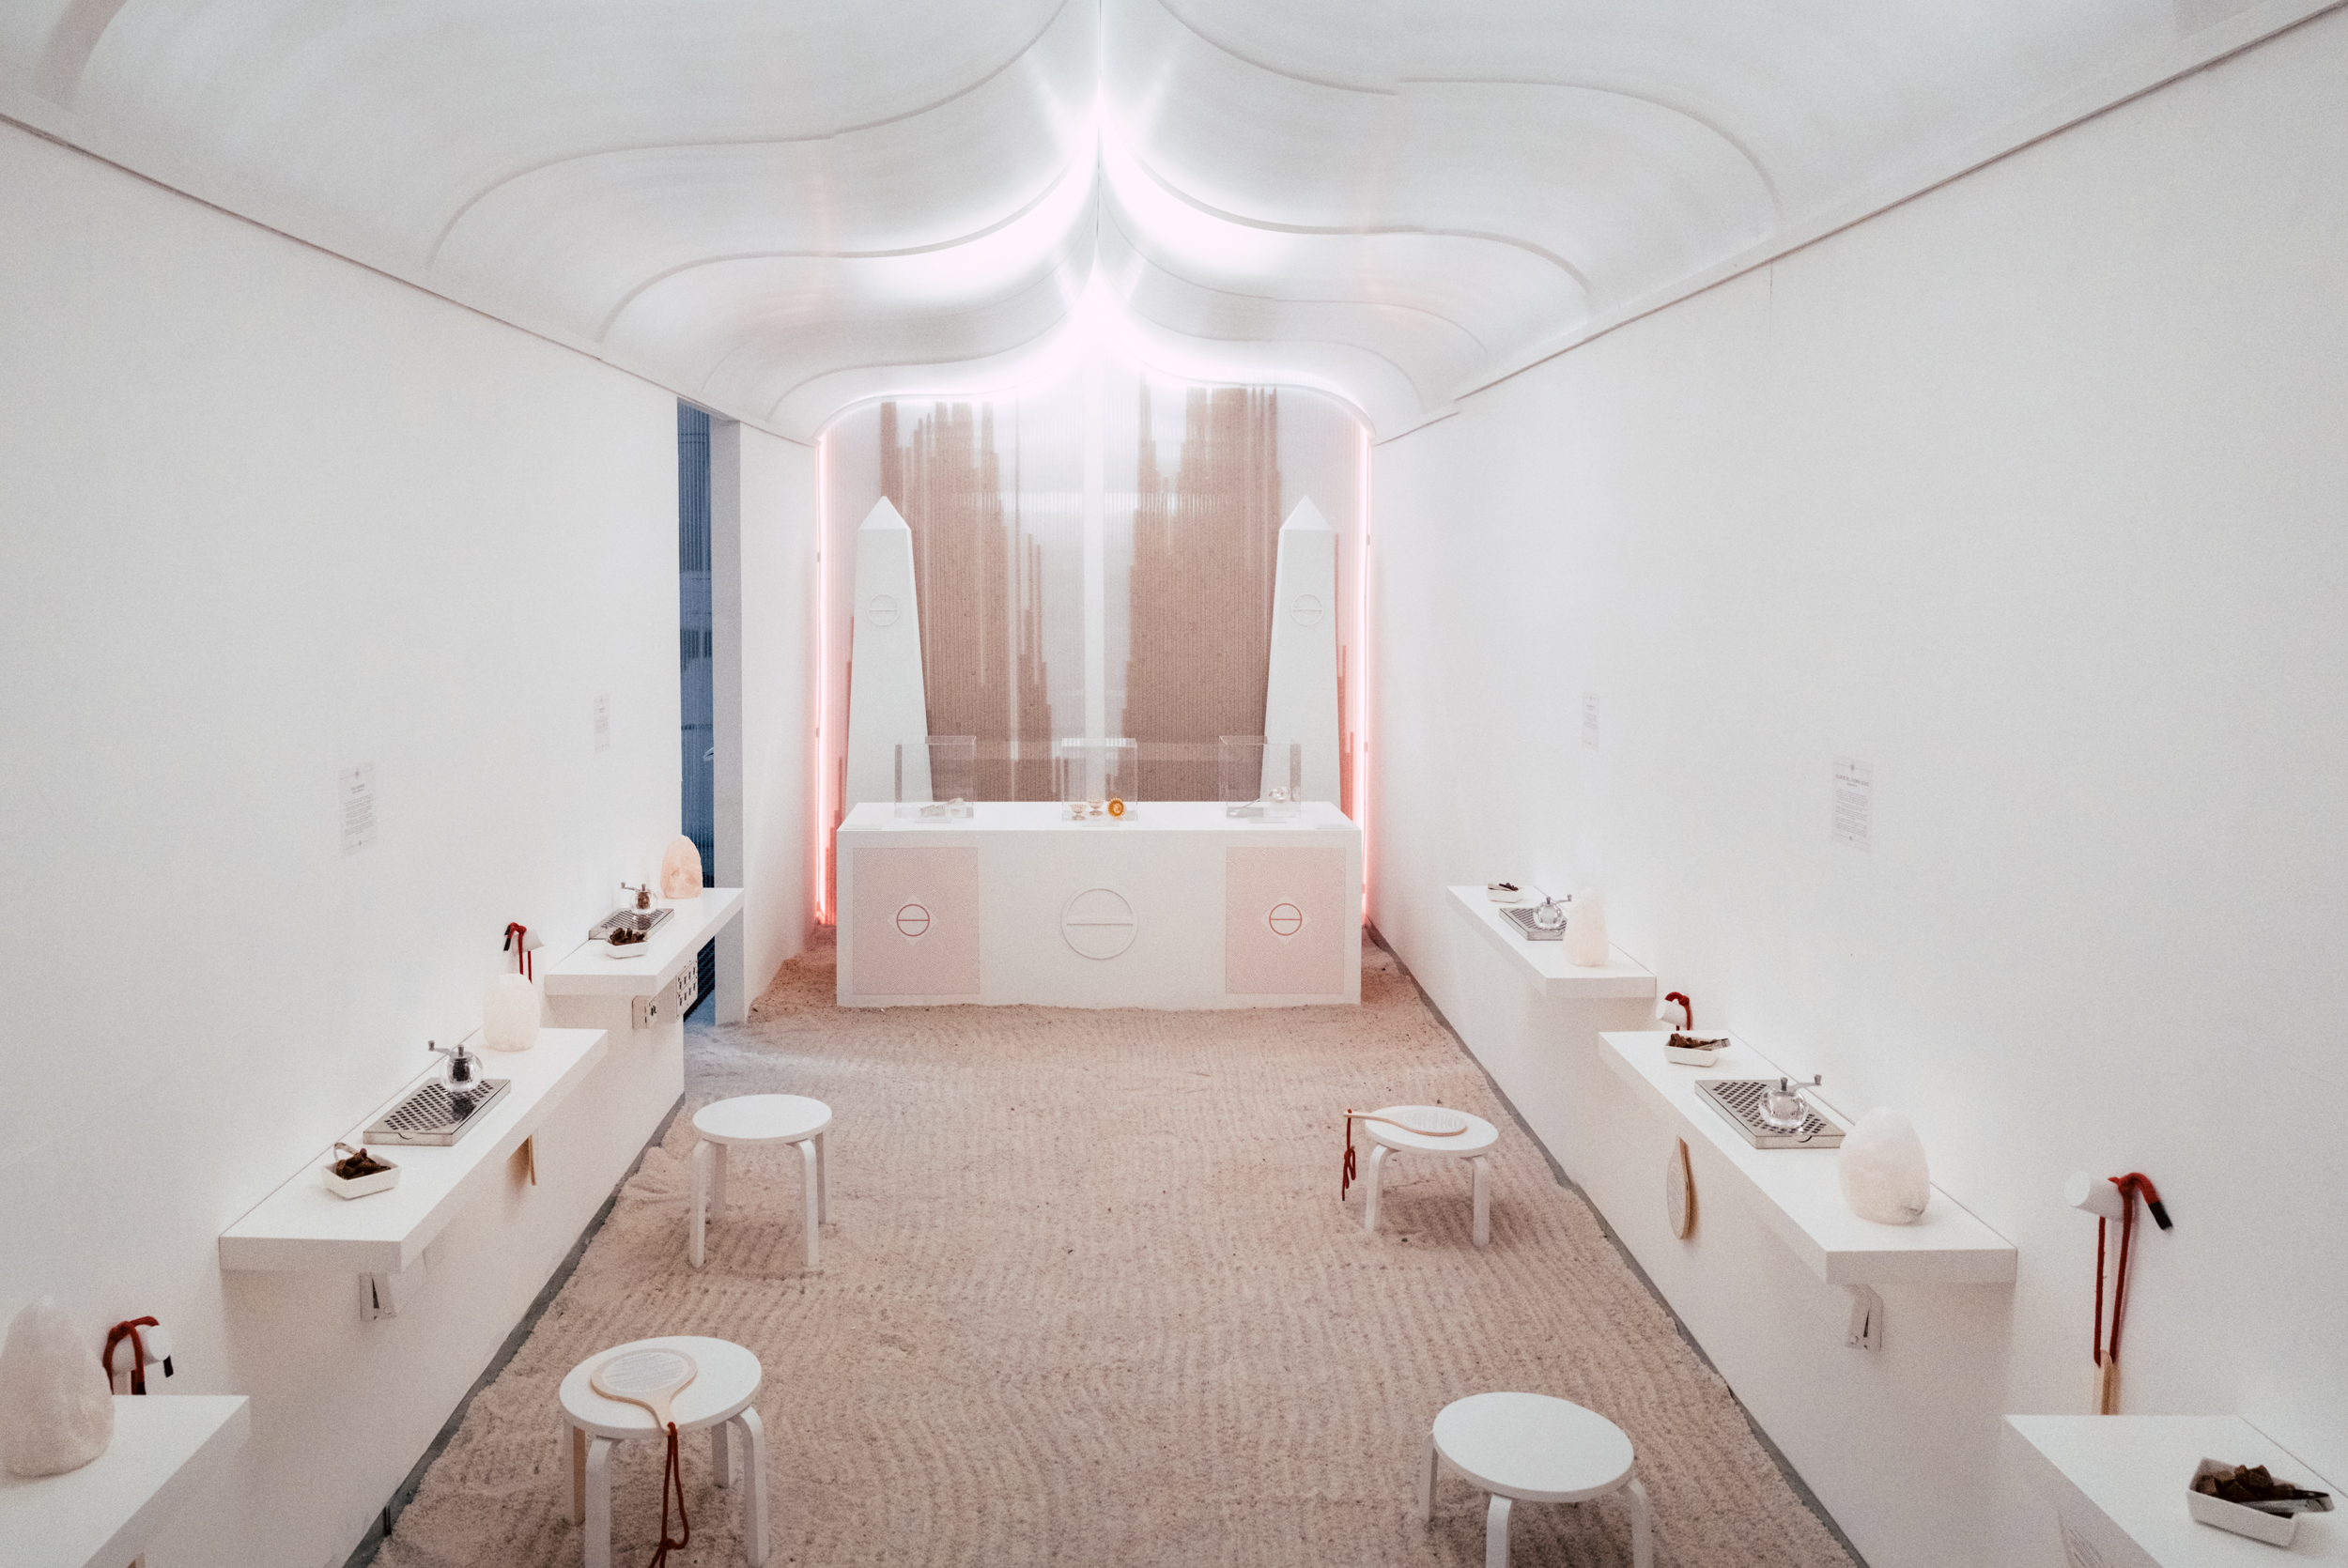 Bompas & Parr installation view at Welcome Home: A Speculation on Living Spaces